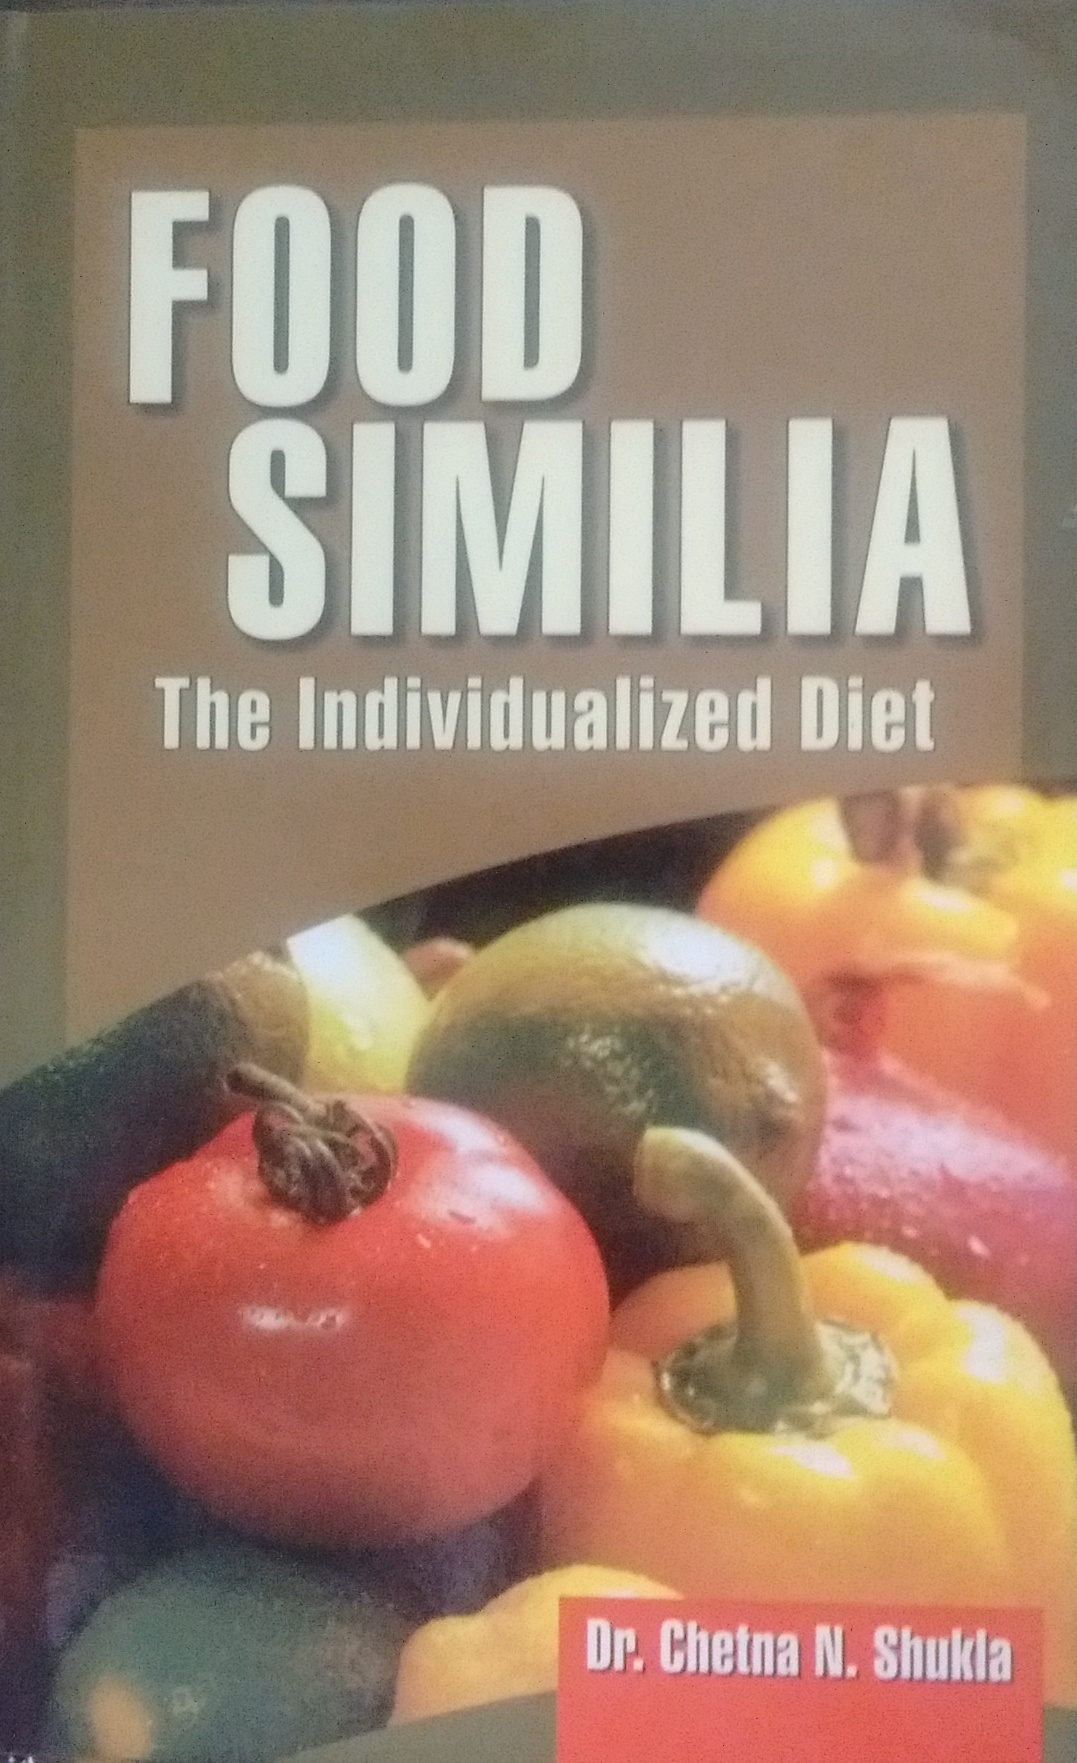 Food Similia: The Individualized Diet